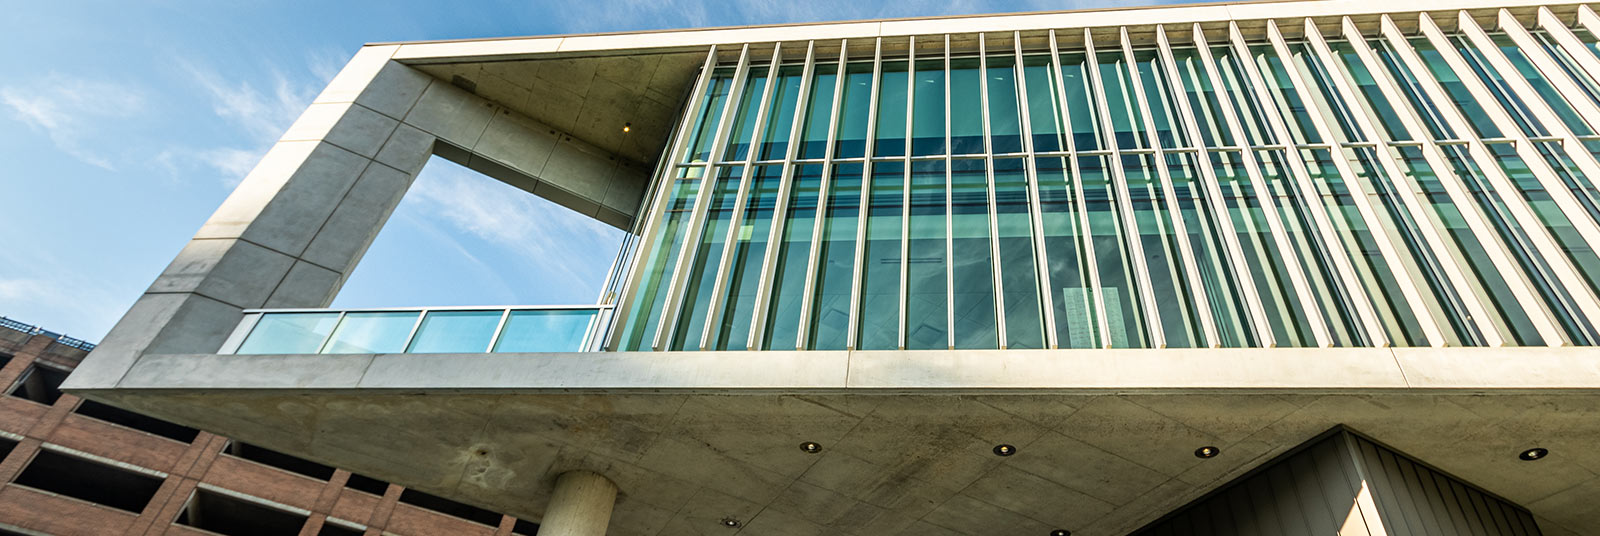 The balcony on the end of the University of Cincinnati Health Sciences Building.